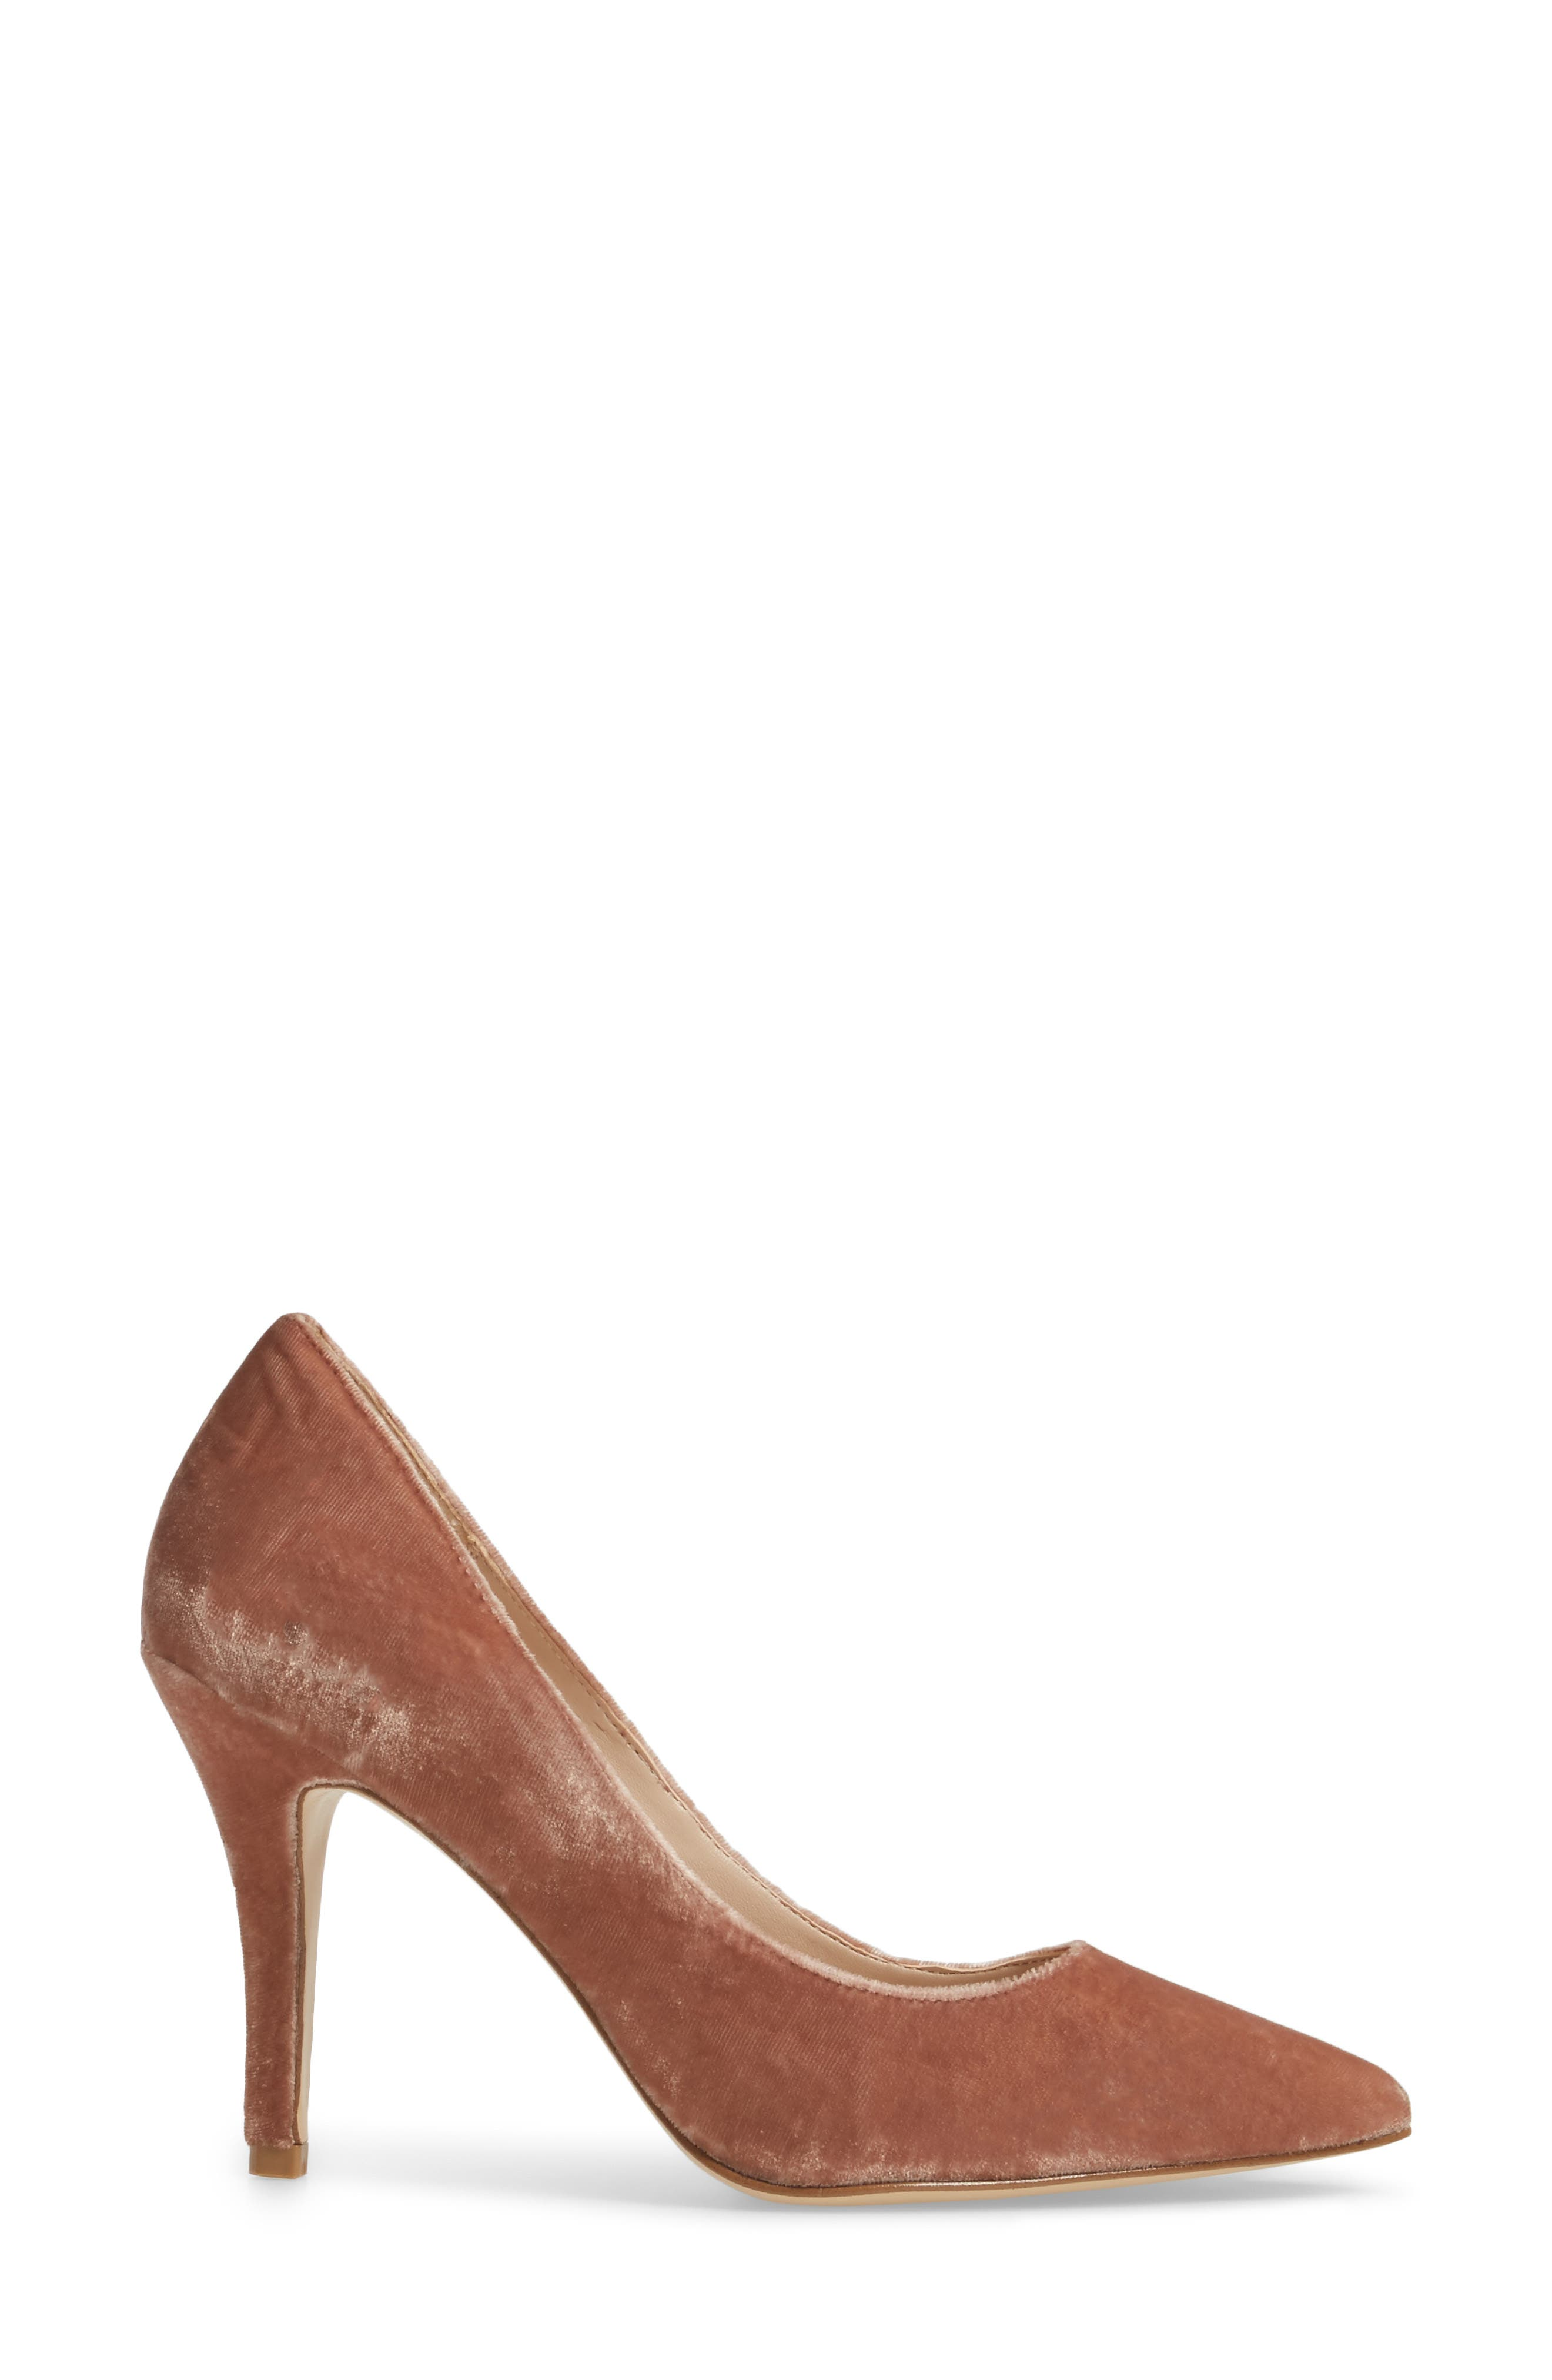 Vally2 Pointy Toe Pump,                             Alternate thumbnail 3, color,                             Blush Fabric